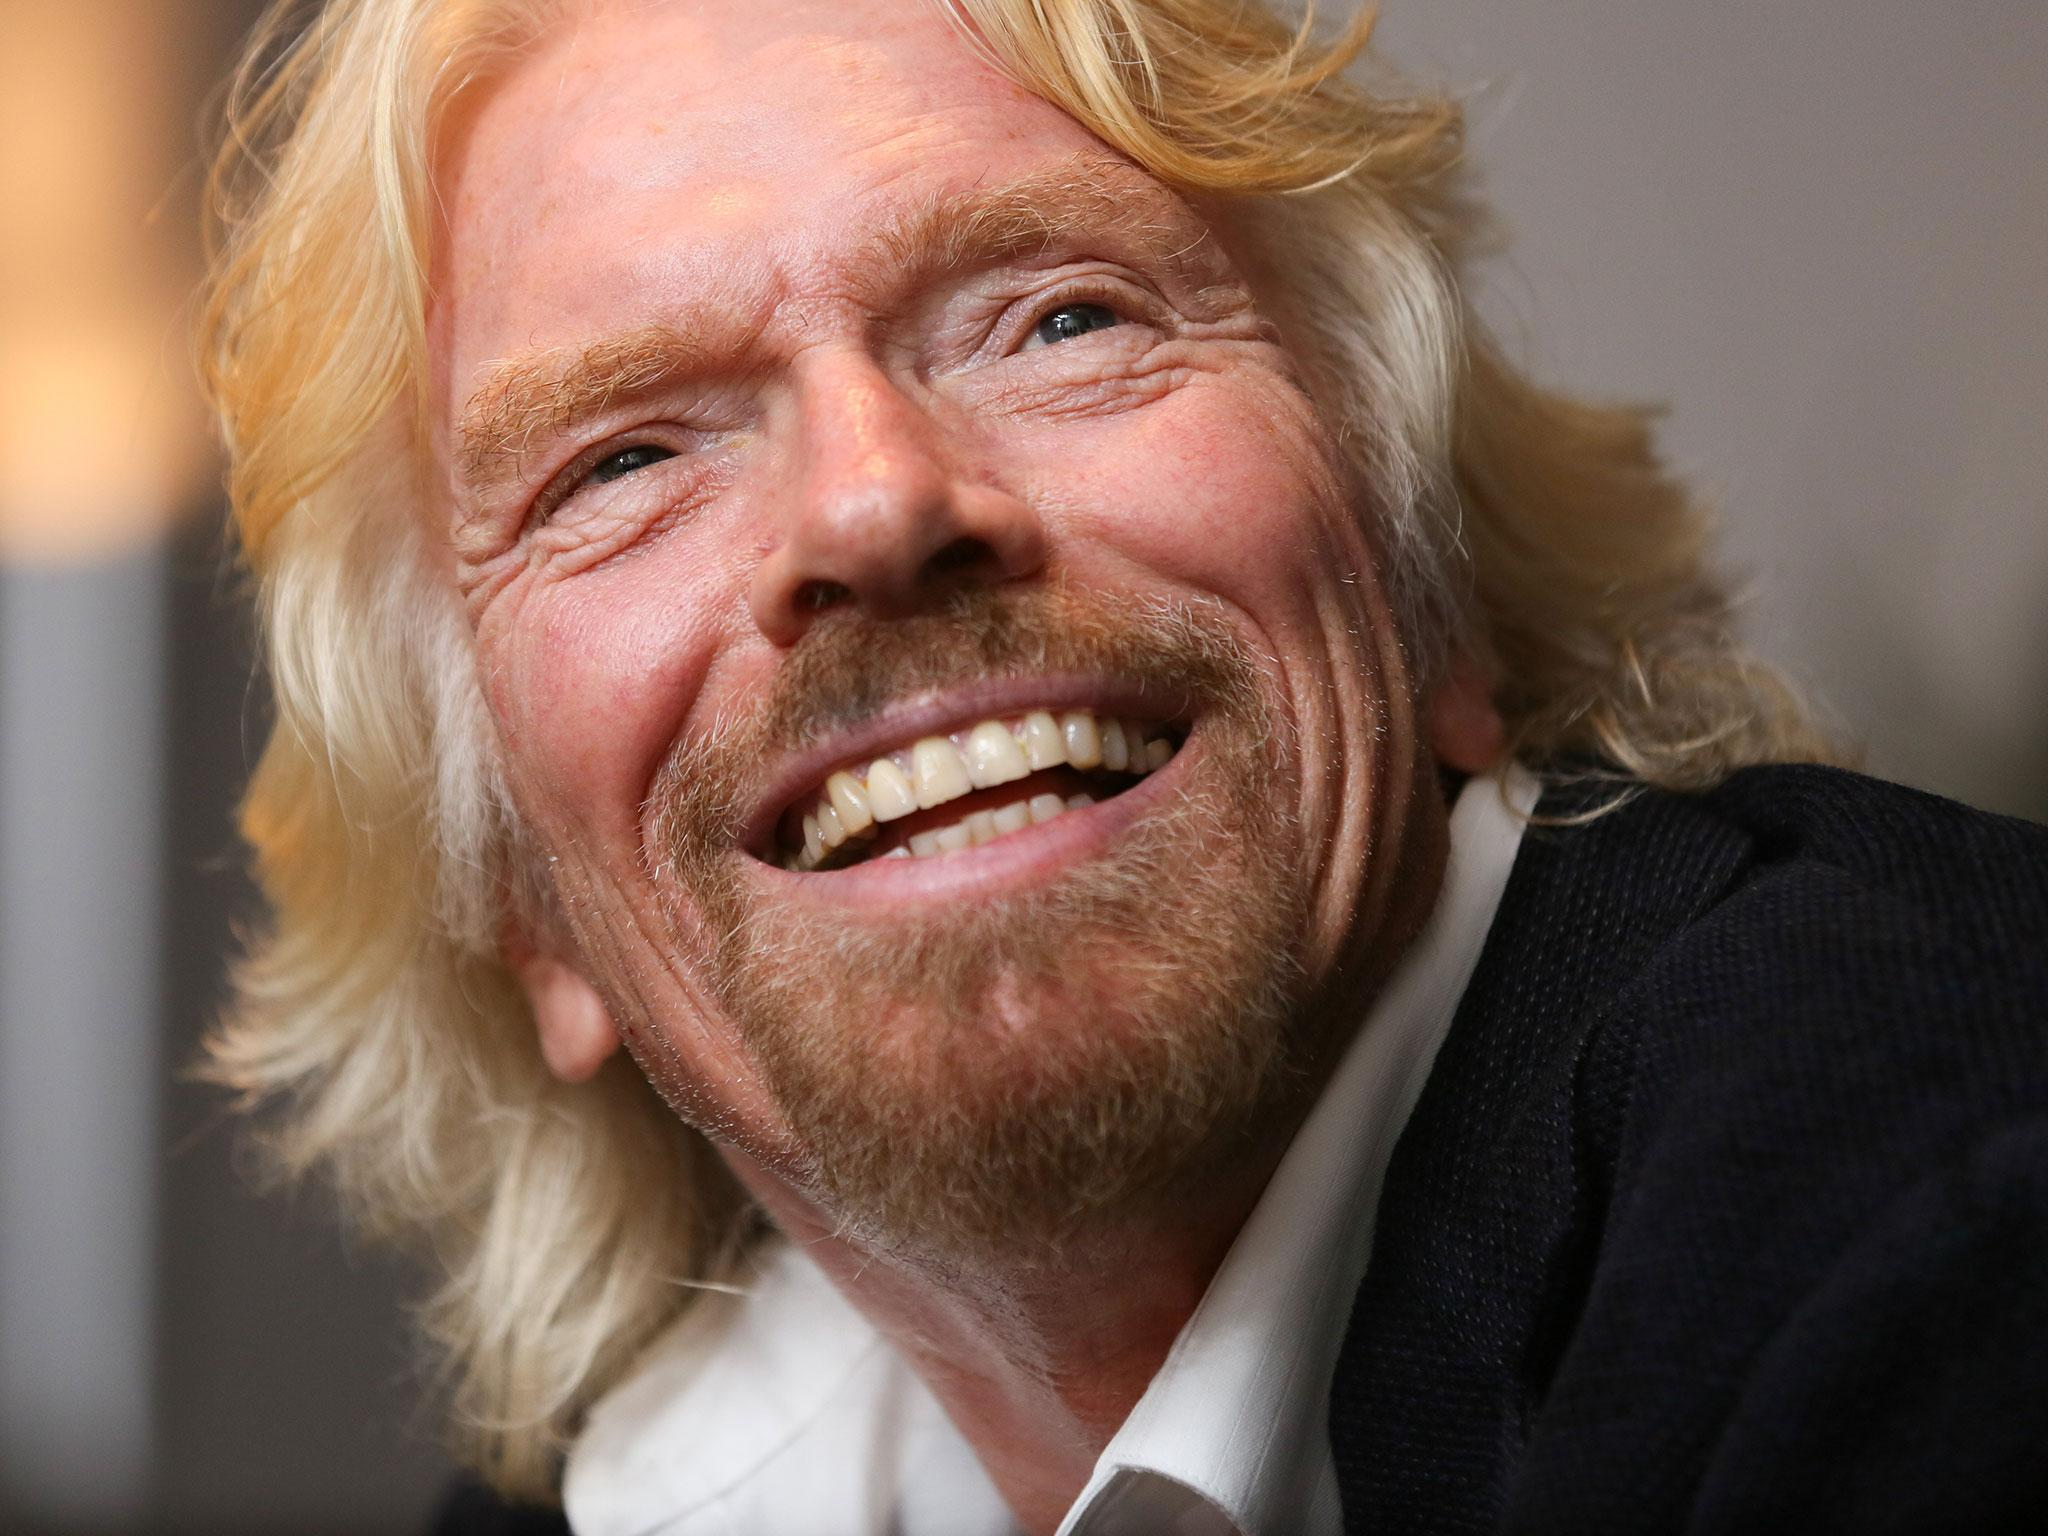 richard branson - photo #8